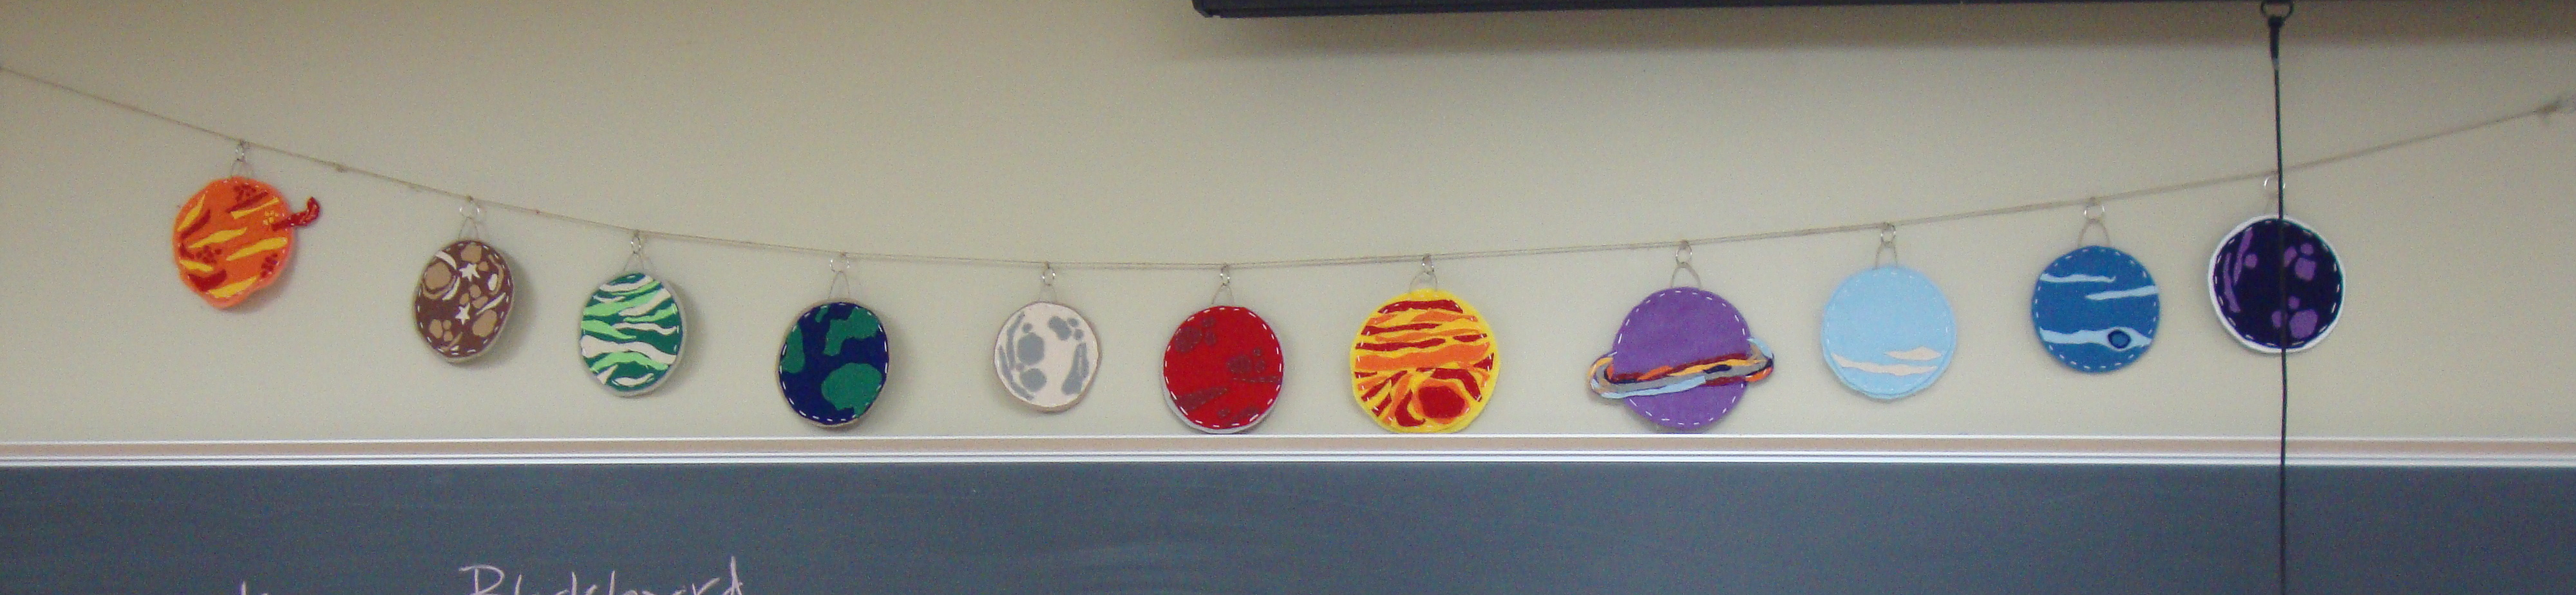 creative solar system projects - photo #34